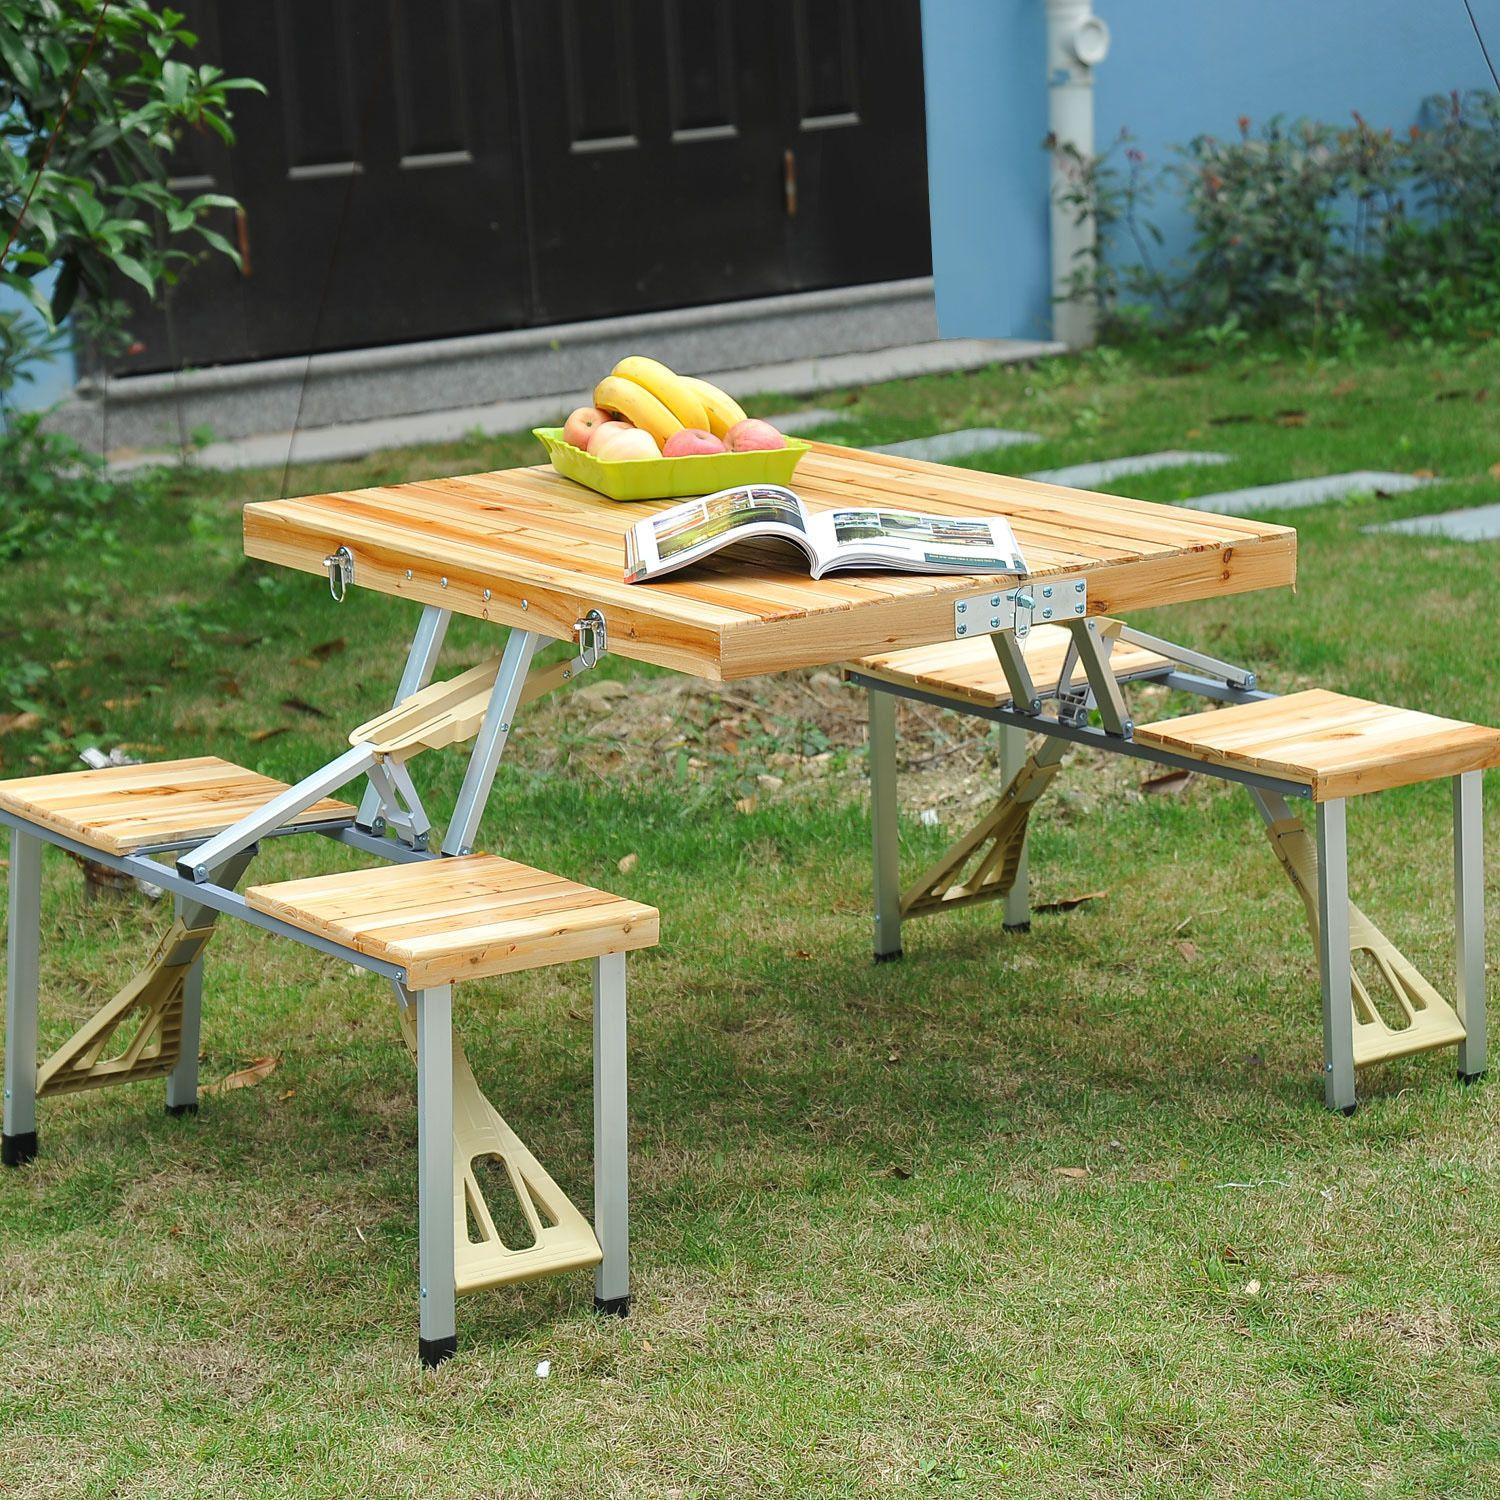 Details About Wooden Picnic Table Bench Seat Outdoor